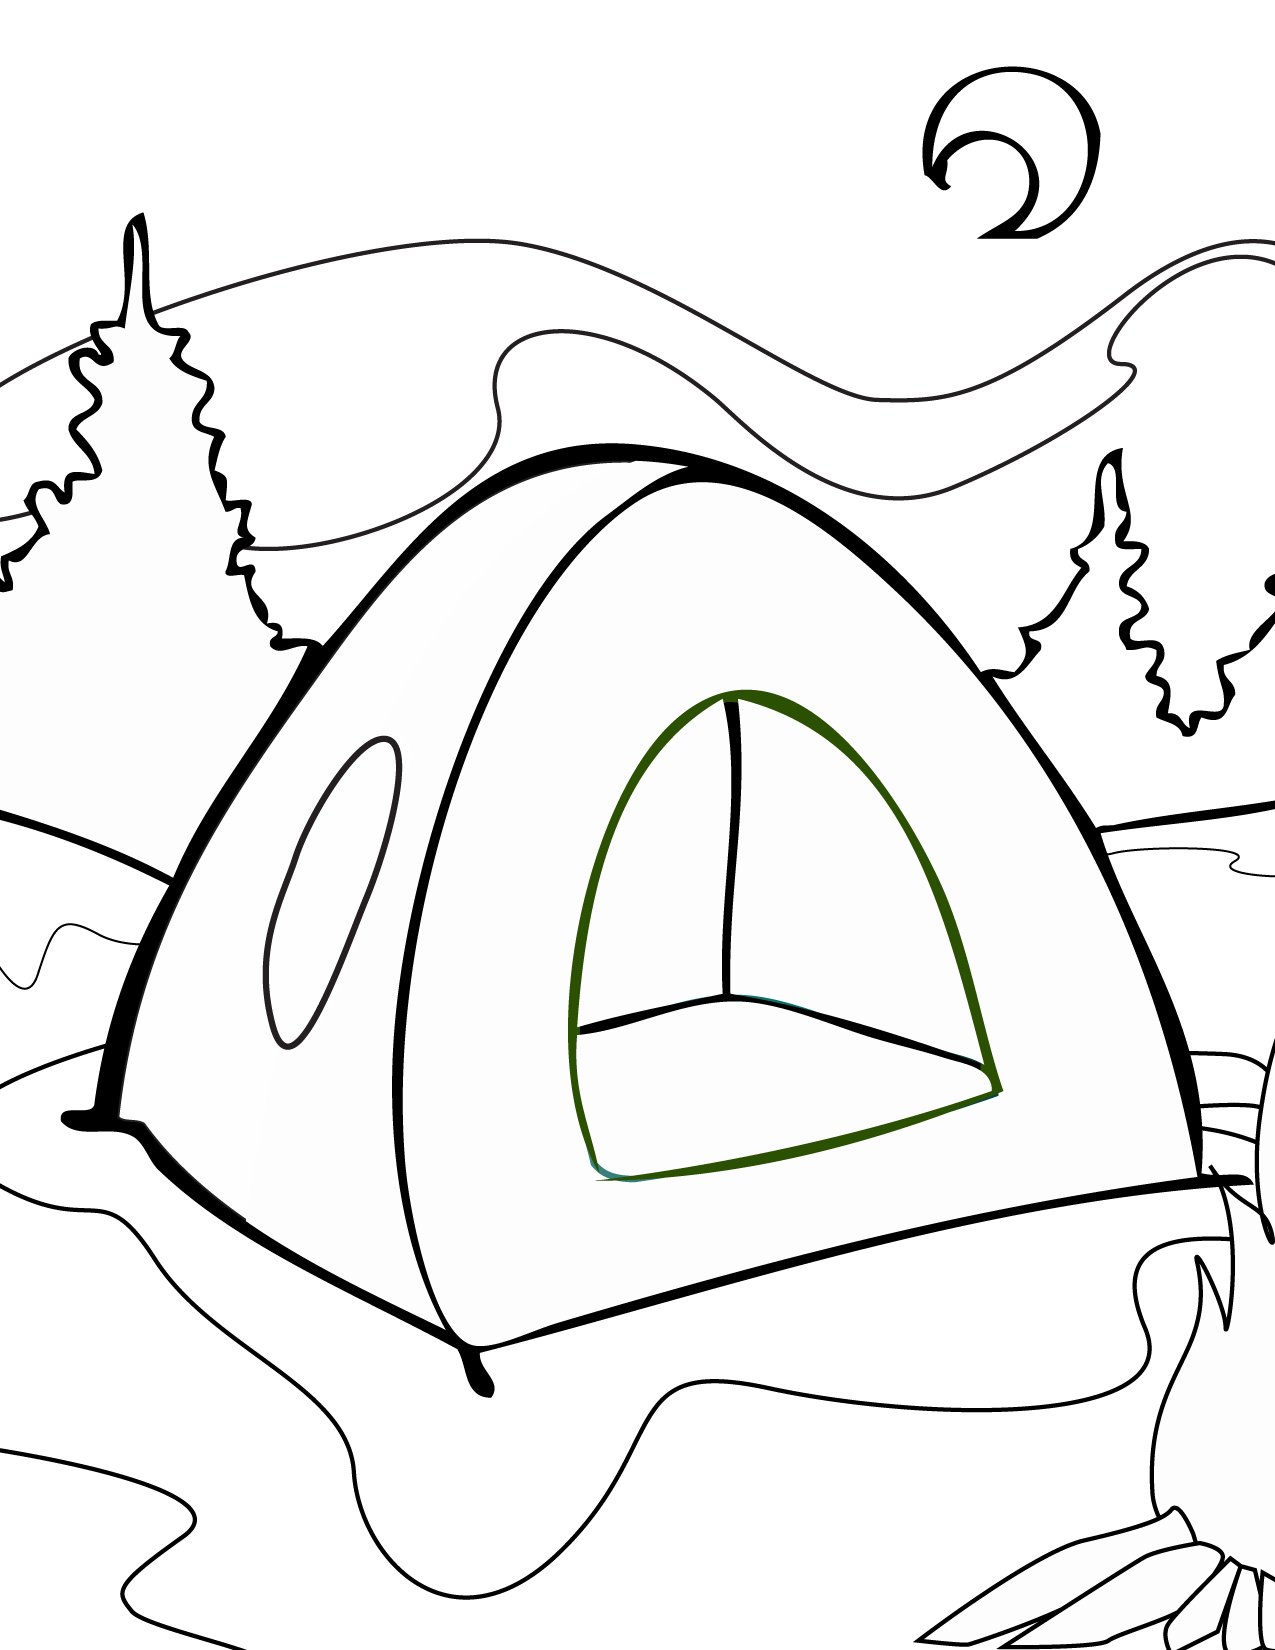 Free coloring pages national parks - There Were Once Two Friends Named Qassim And Burhan Who Went Camping At One Of The State S National Parks